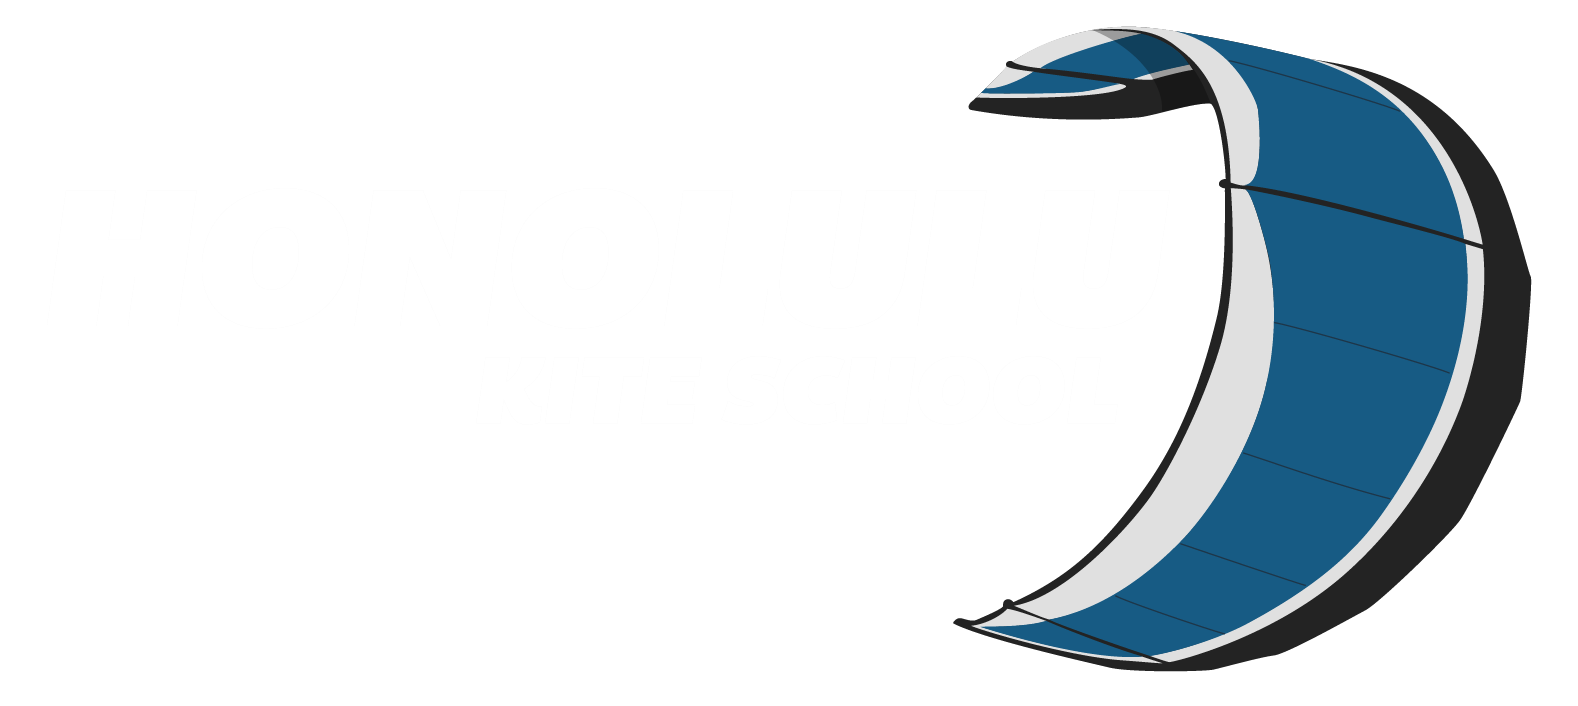 Honolulu Kite School